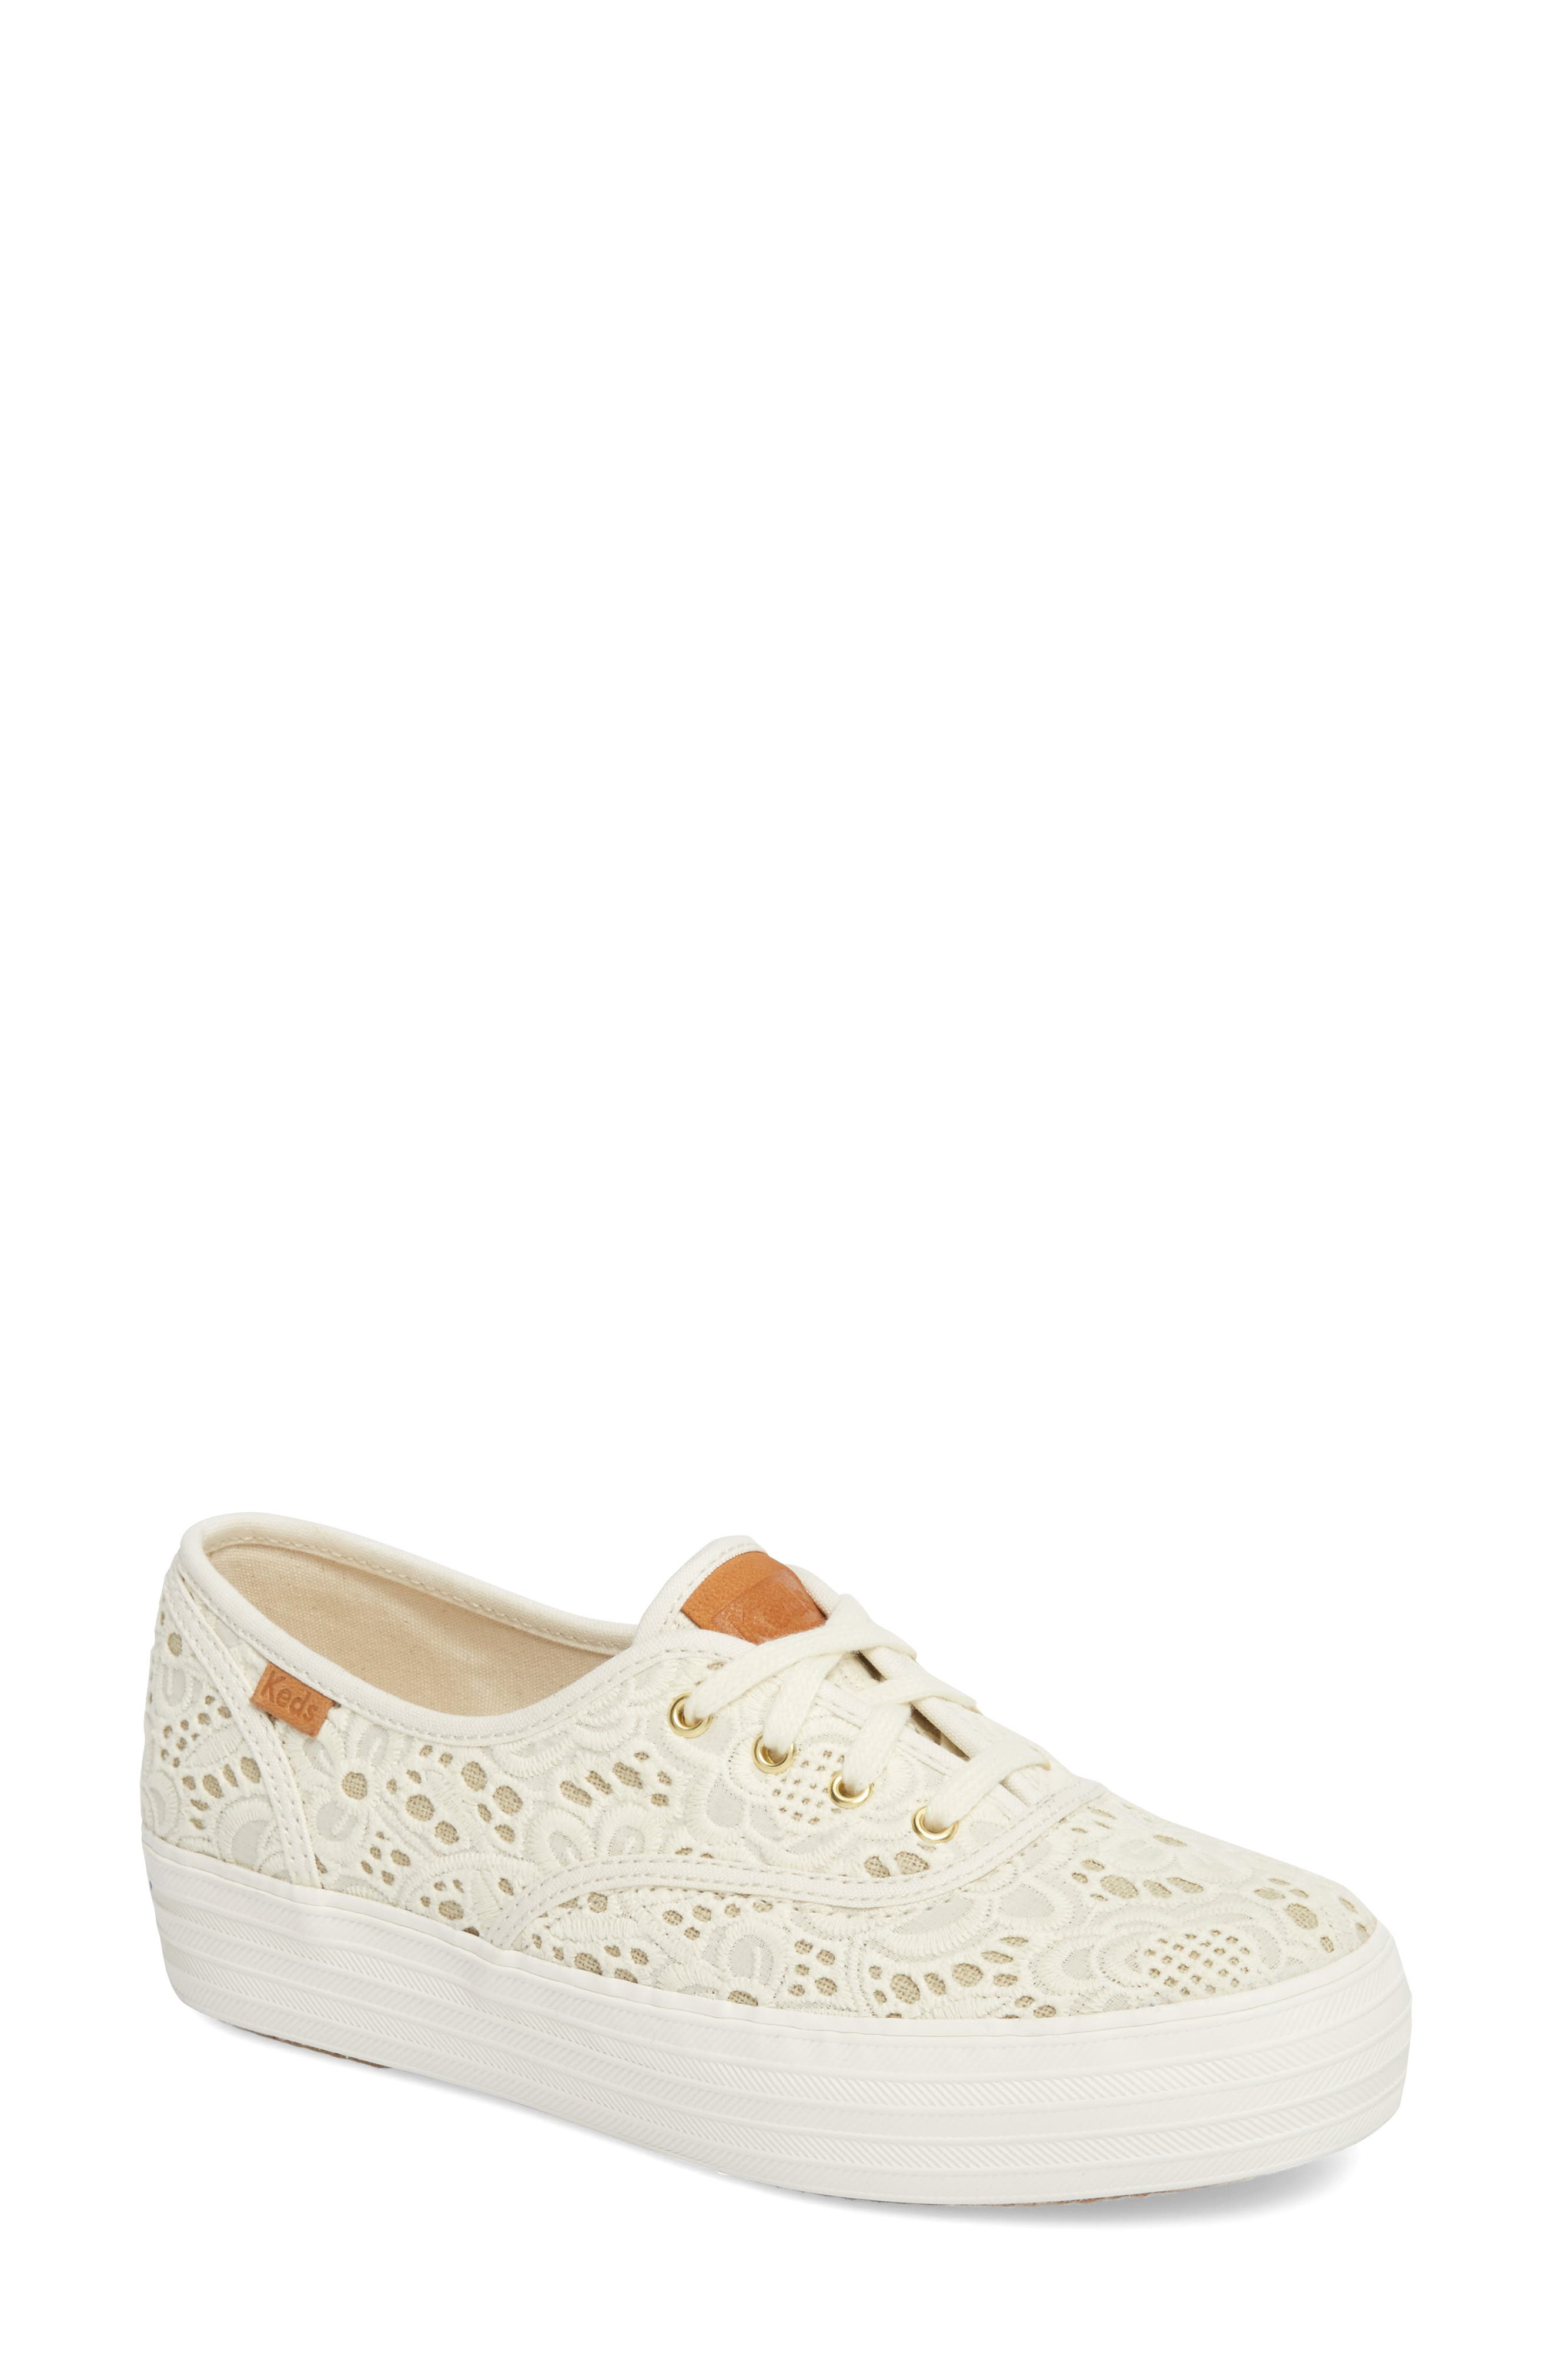 Triple Embroidered Crochet Platform Sneaker,                             Main thumbnail 1, color,                             270